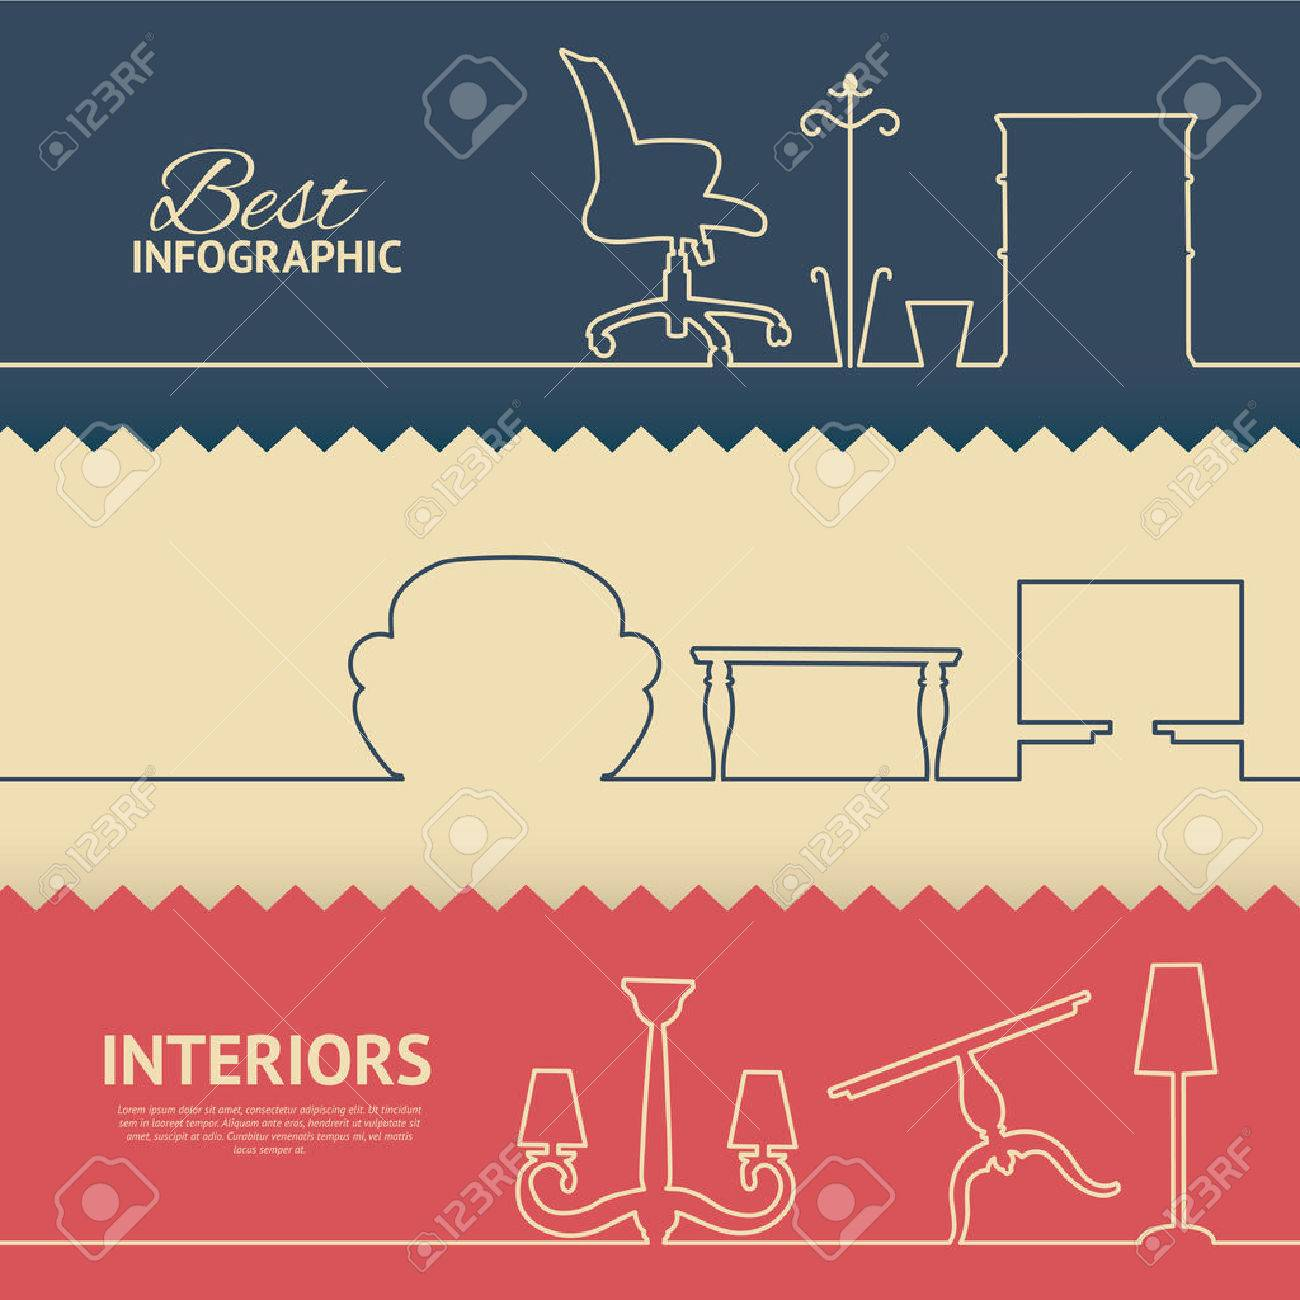 Flat colors infographics with interior design elements. Vector illustration. - 32841962